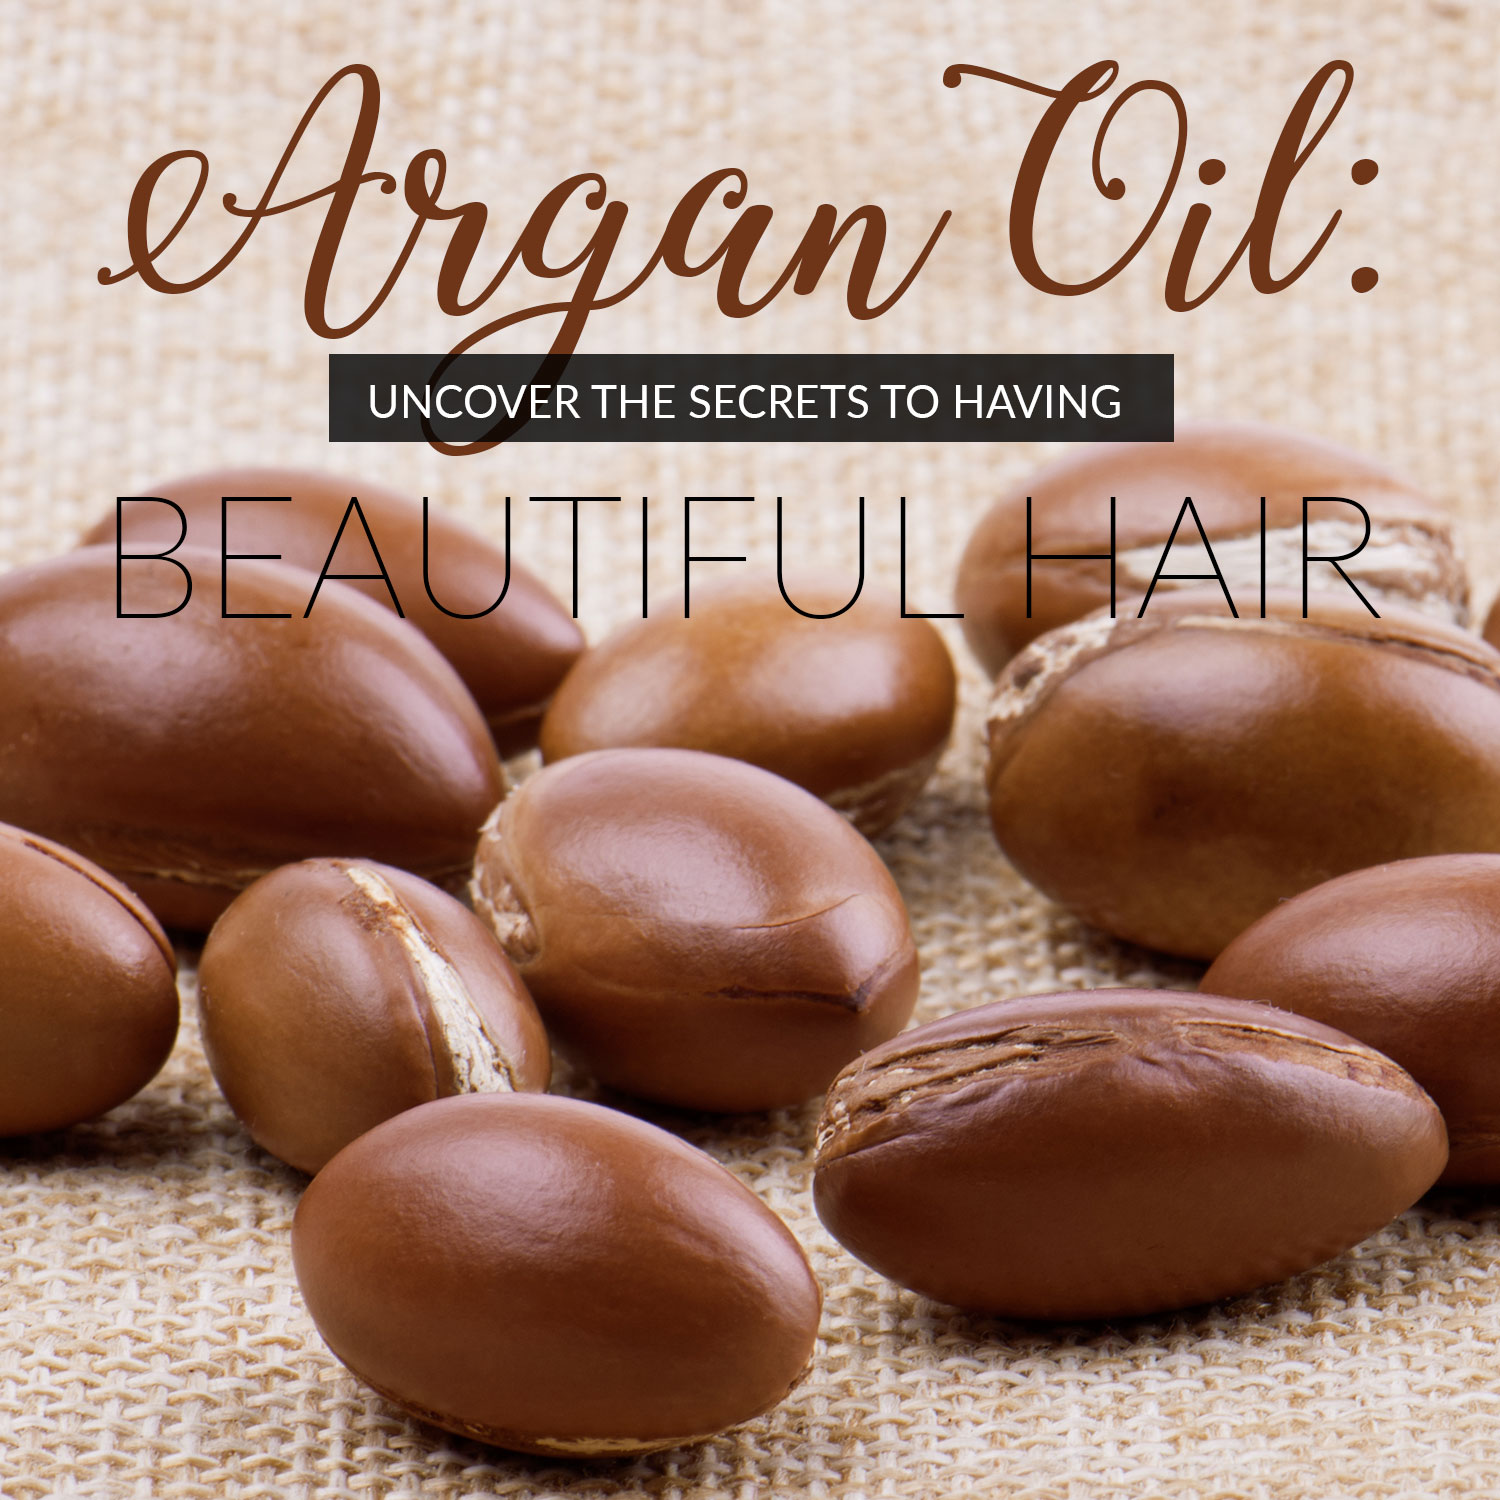 Argan Oil: Uncover the Secrets to Having Beautiful Hair